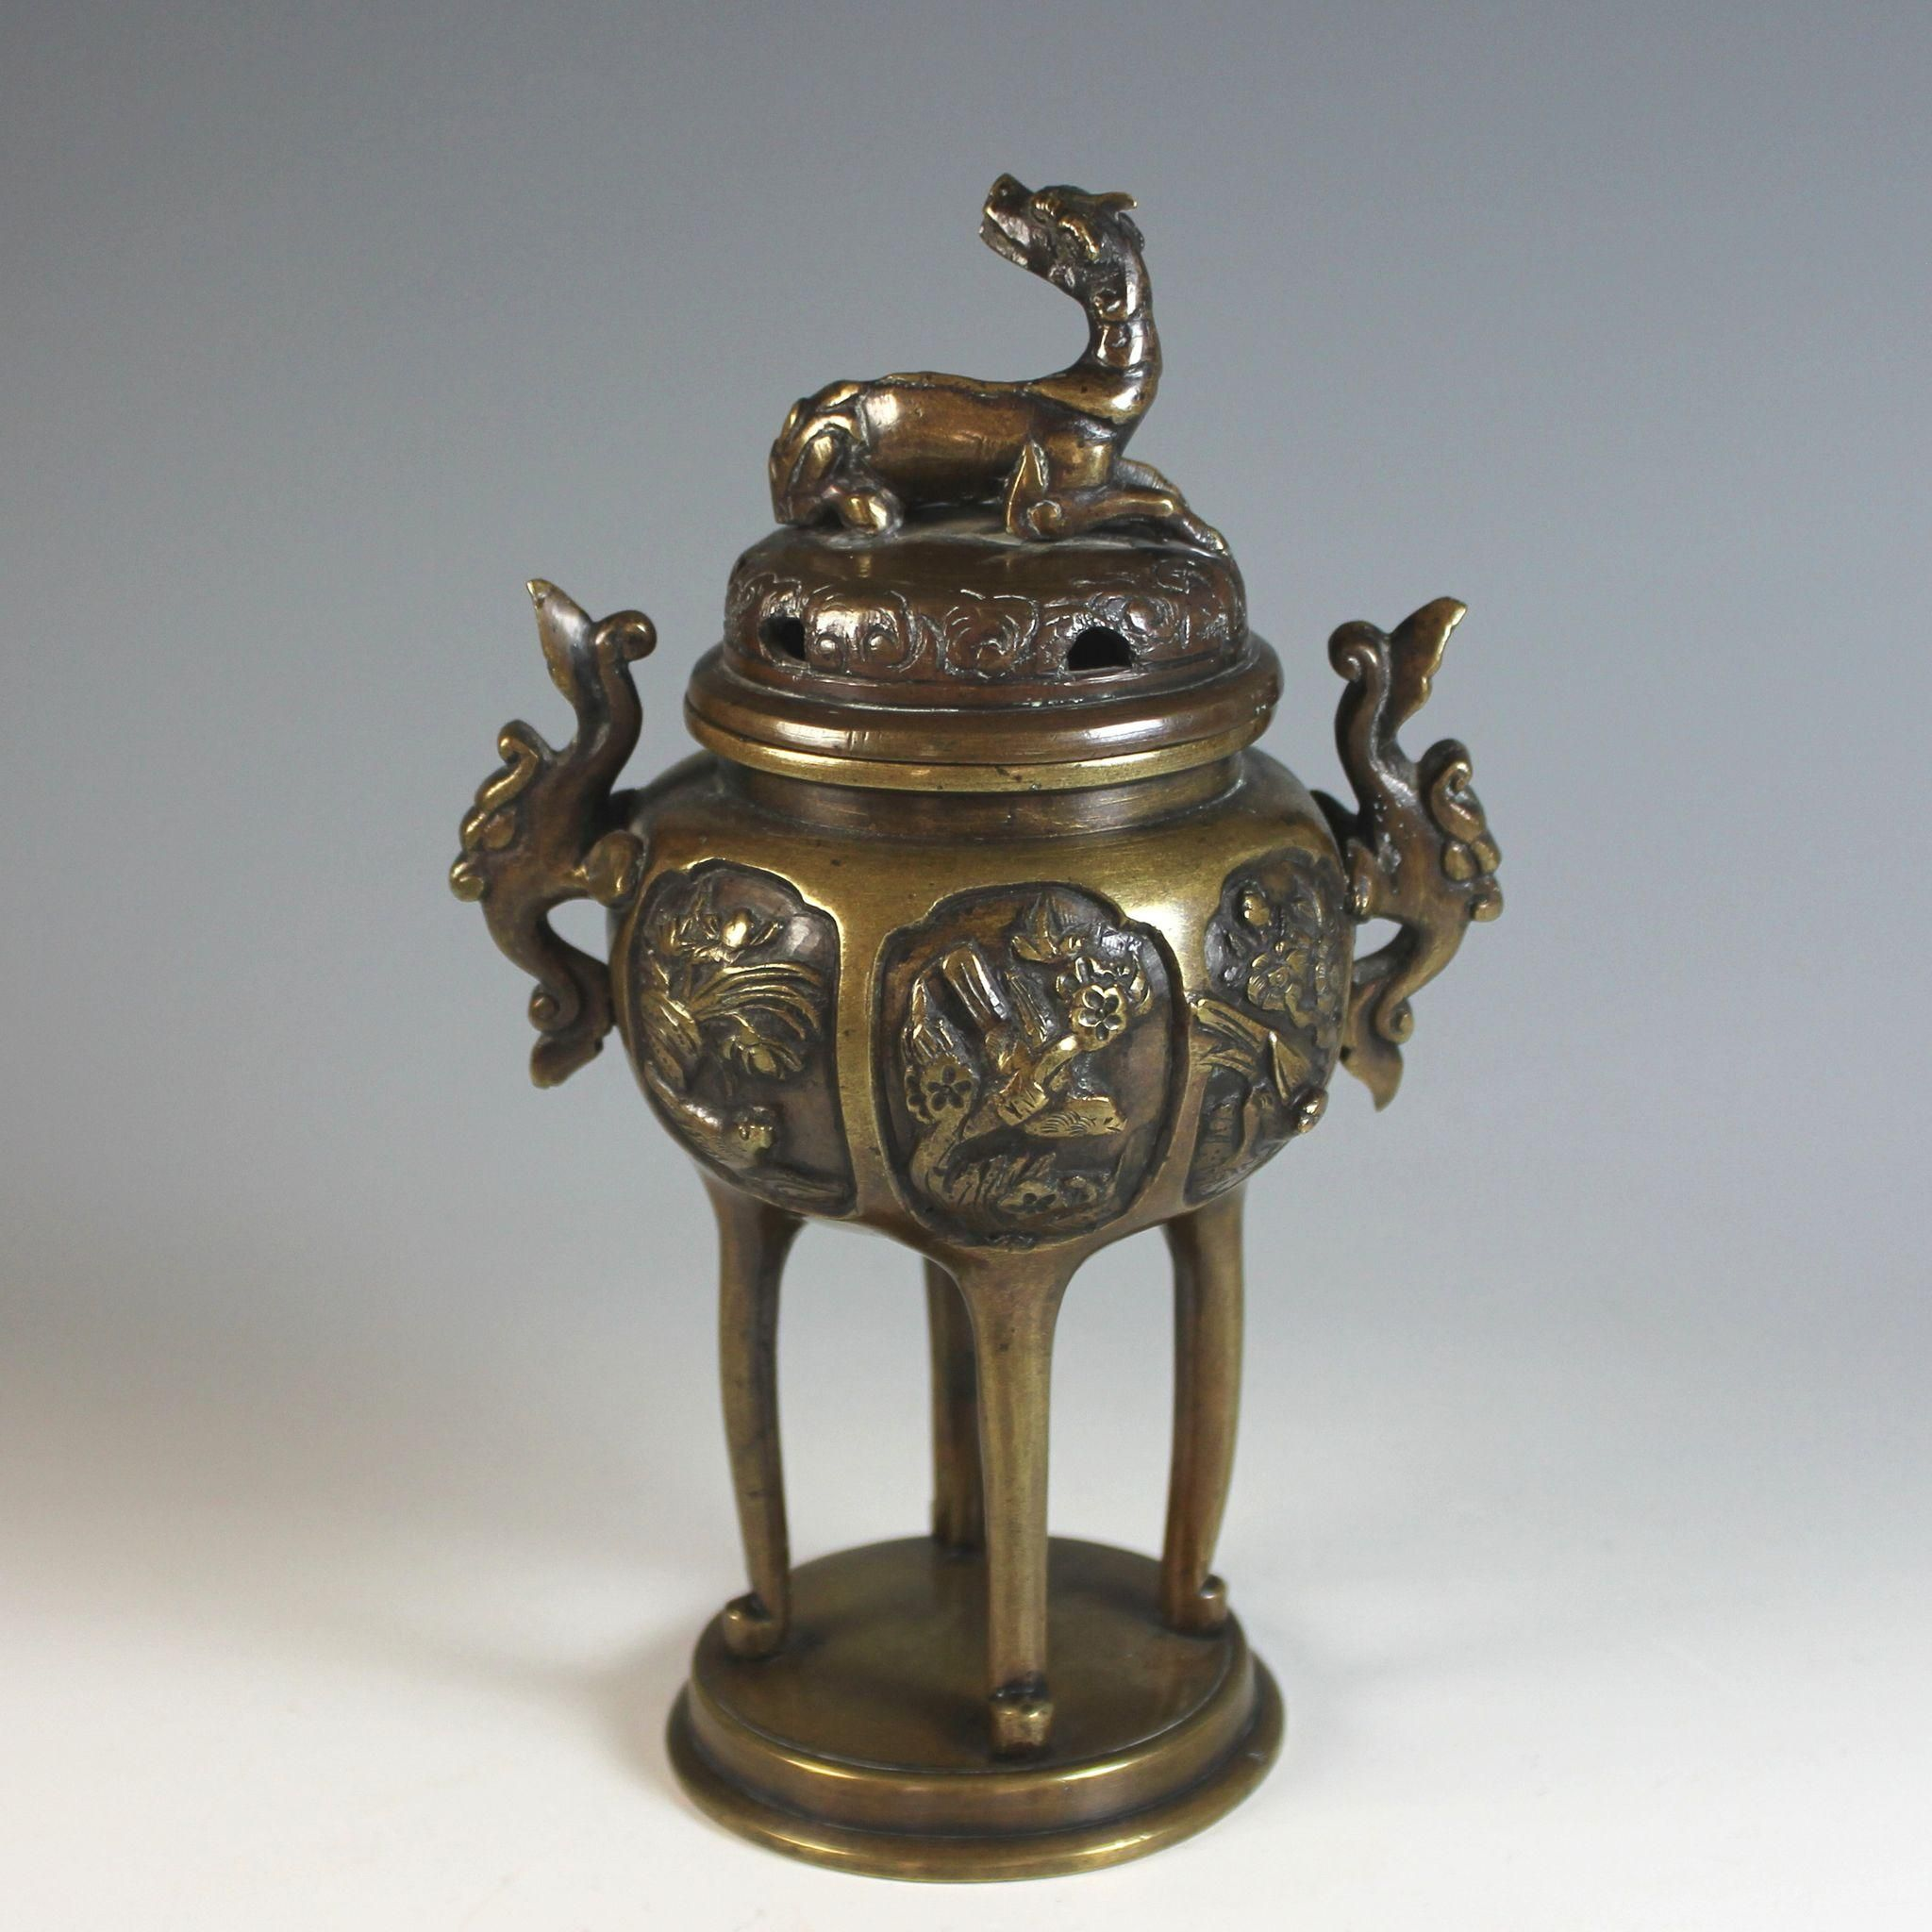 Antique Chinese Bronze Censer Brule Parfum With Birds And Foo Lion Chinese Bronze Antiques Censer